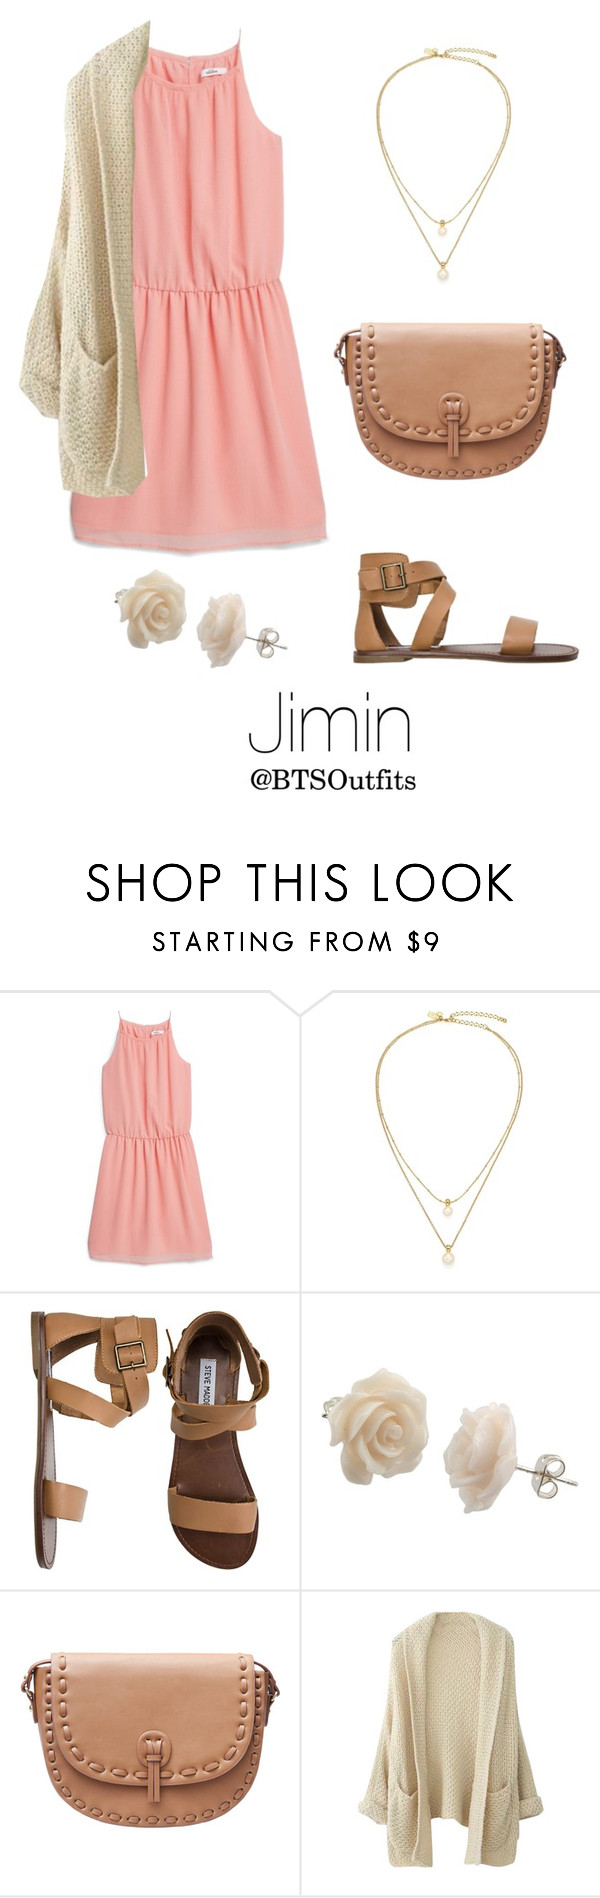 """""""Church with Jimin"""" by btsoutfits ❤ liked on Polyvore featuring MANGO, Kate Spade and Steve Madden"""